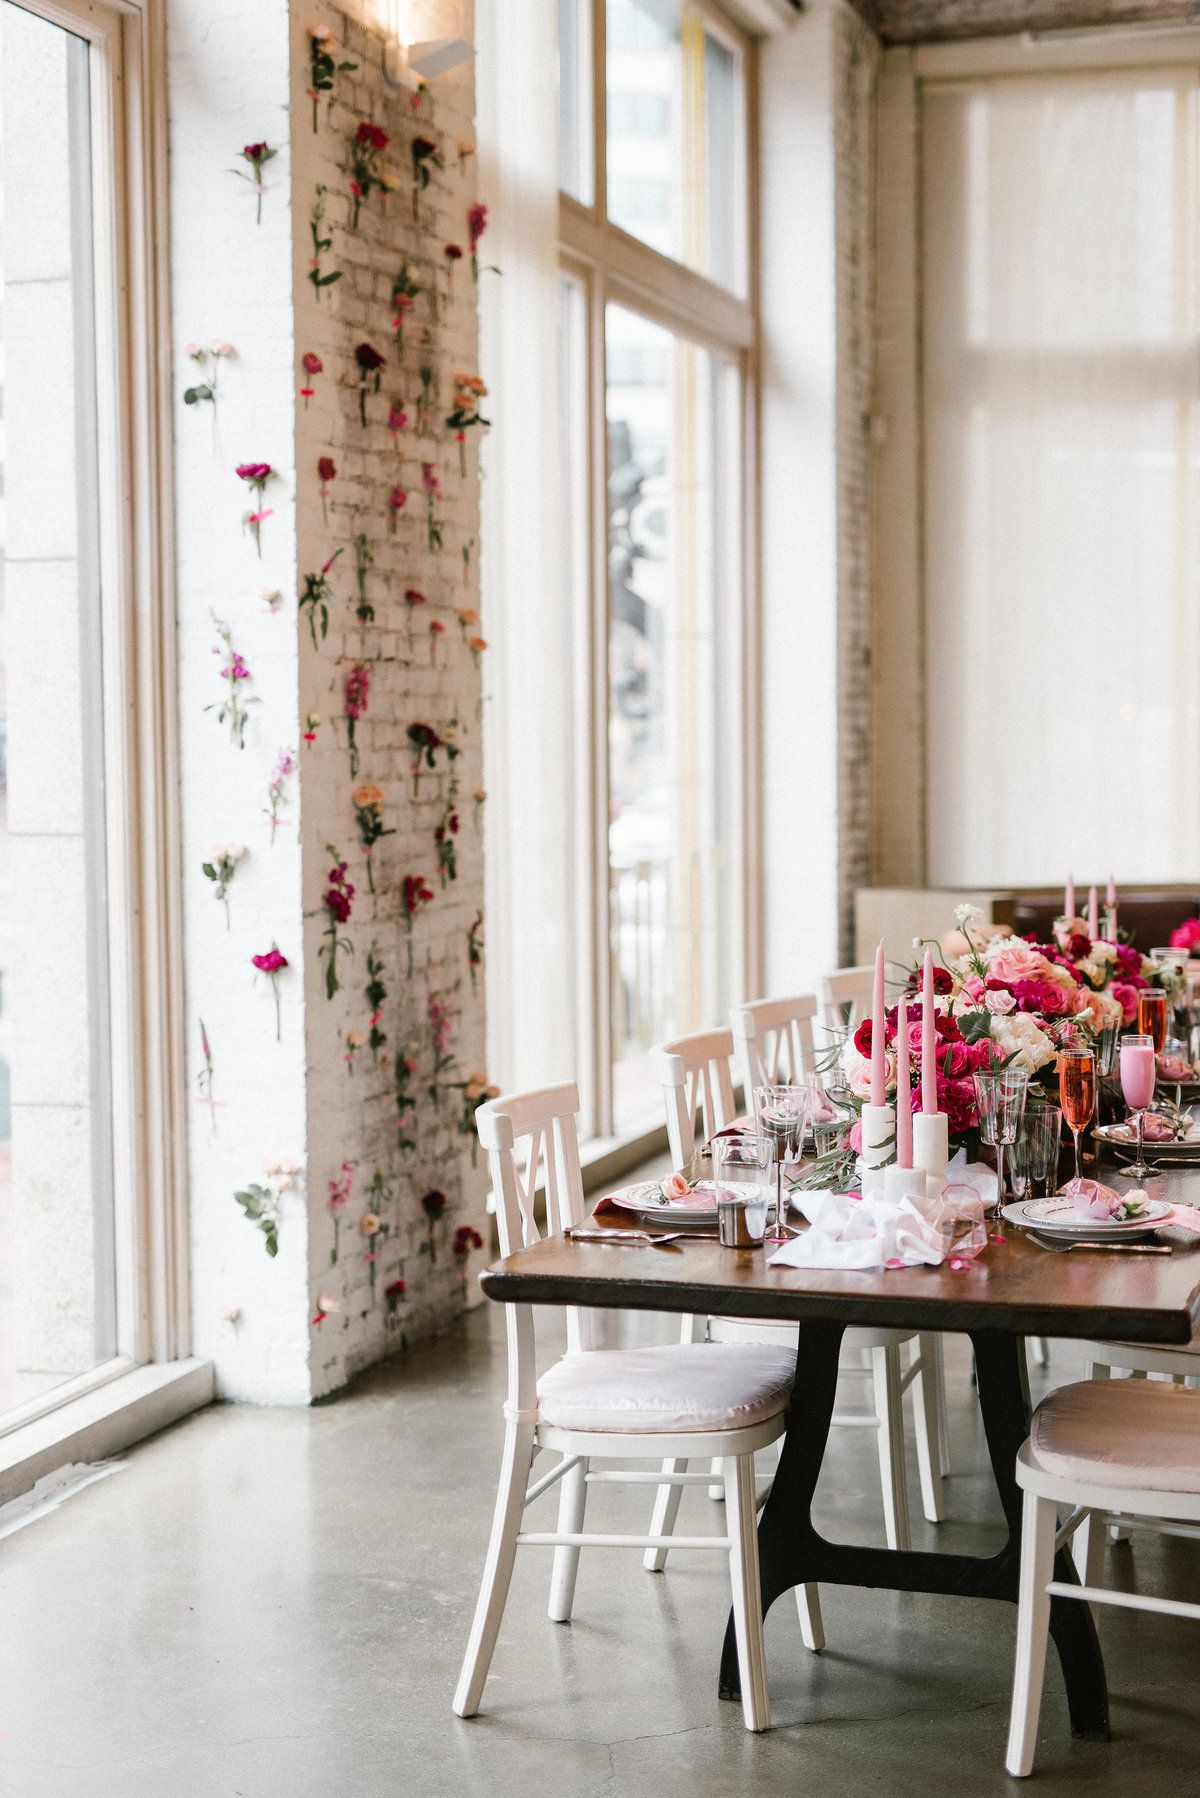 apotheca flowers photographed by lindsay hackney at trade restaurant in boston